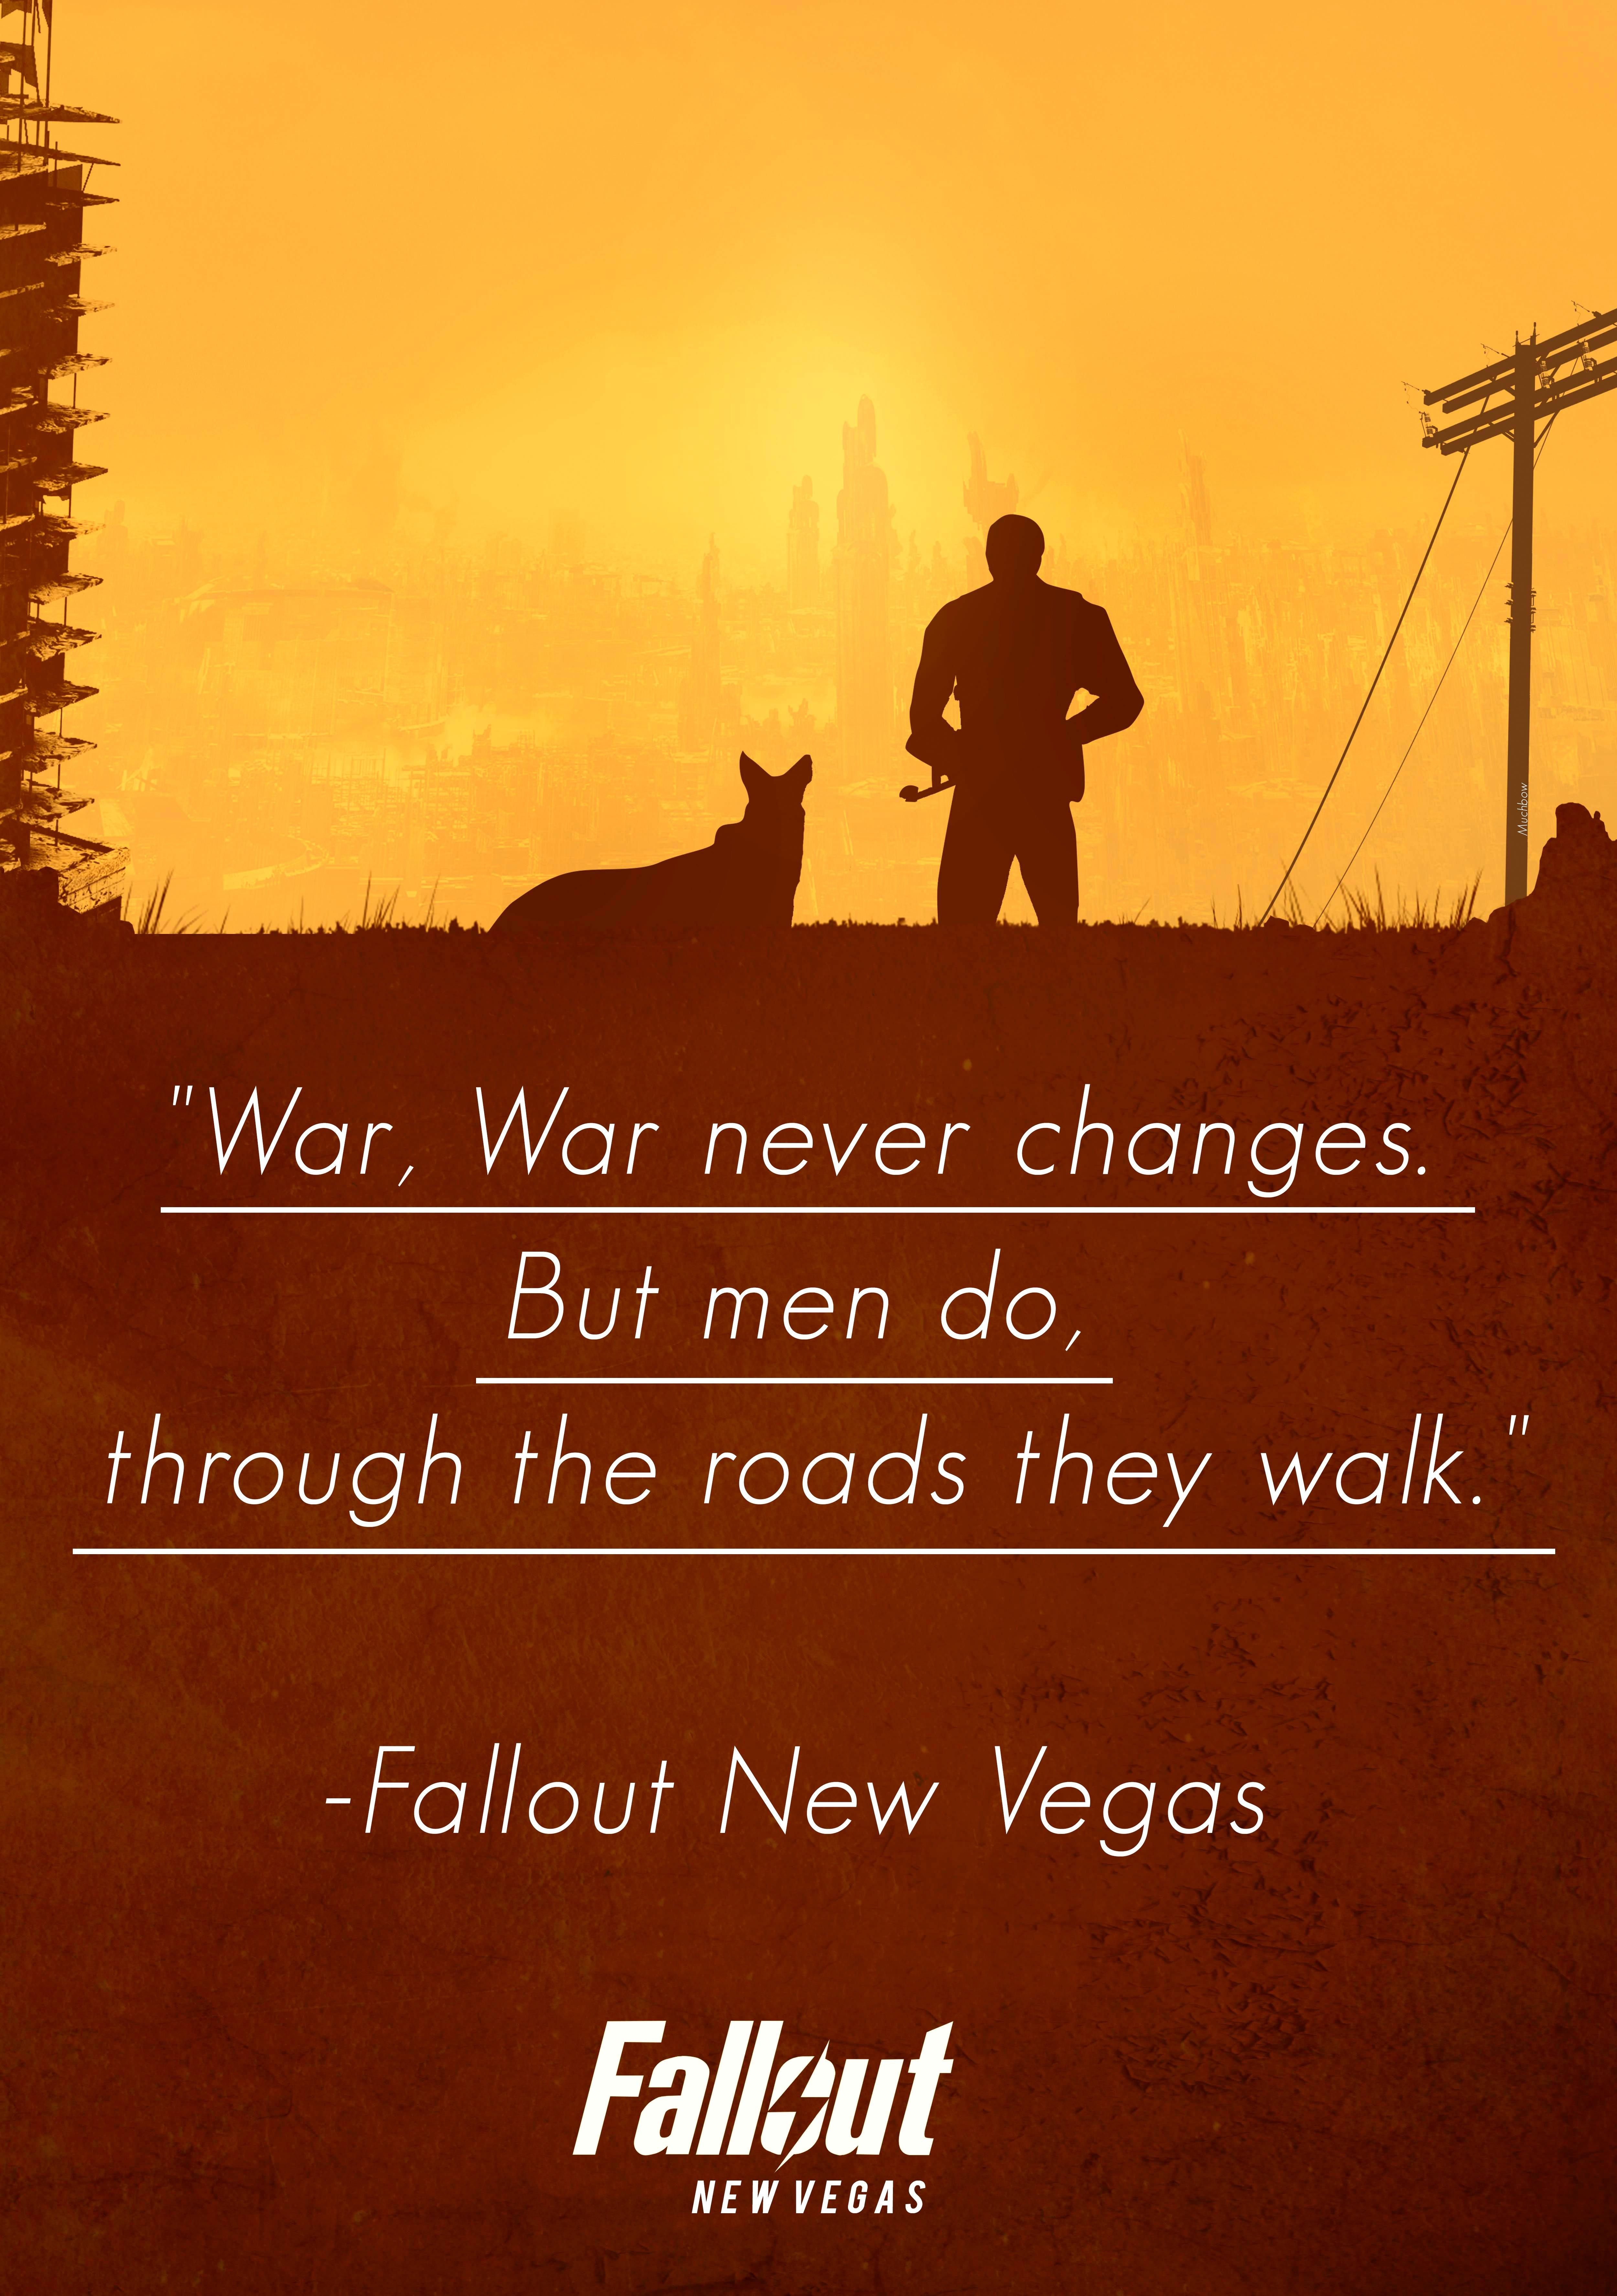 how to change your name in fallout new vegas